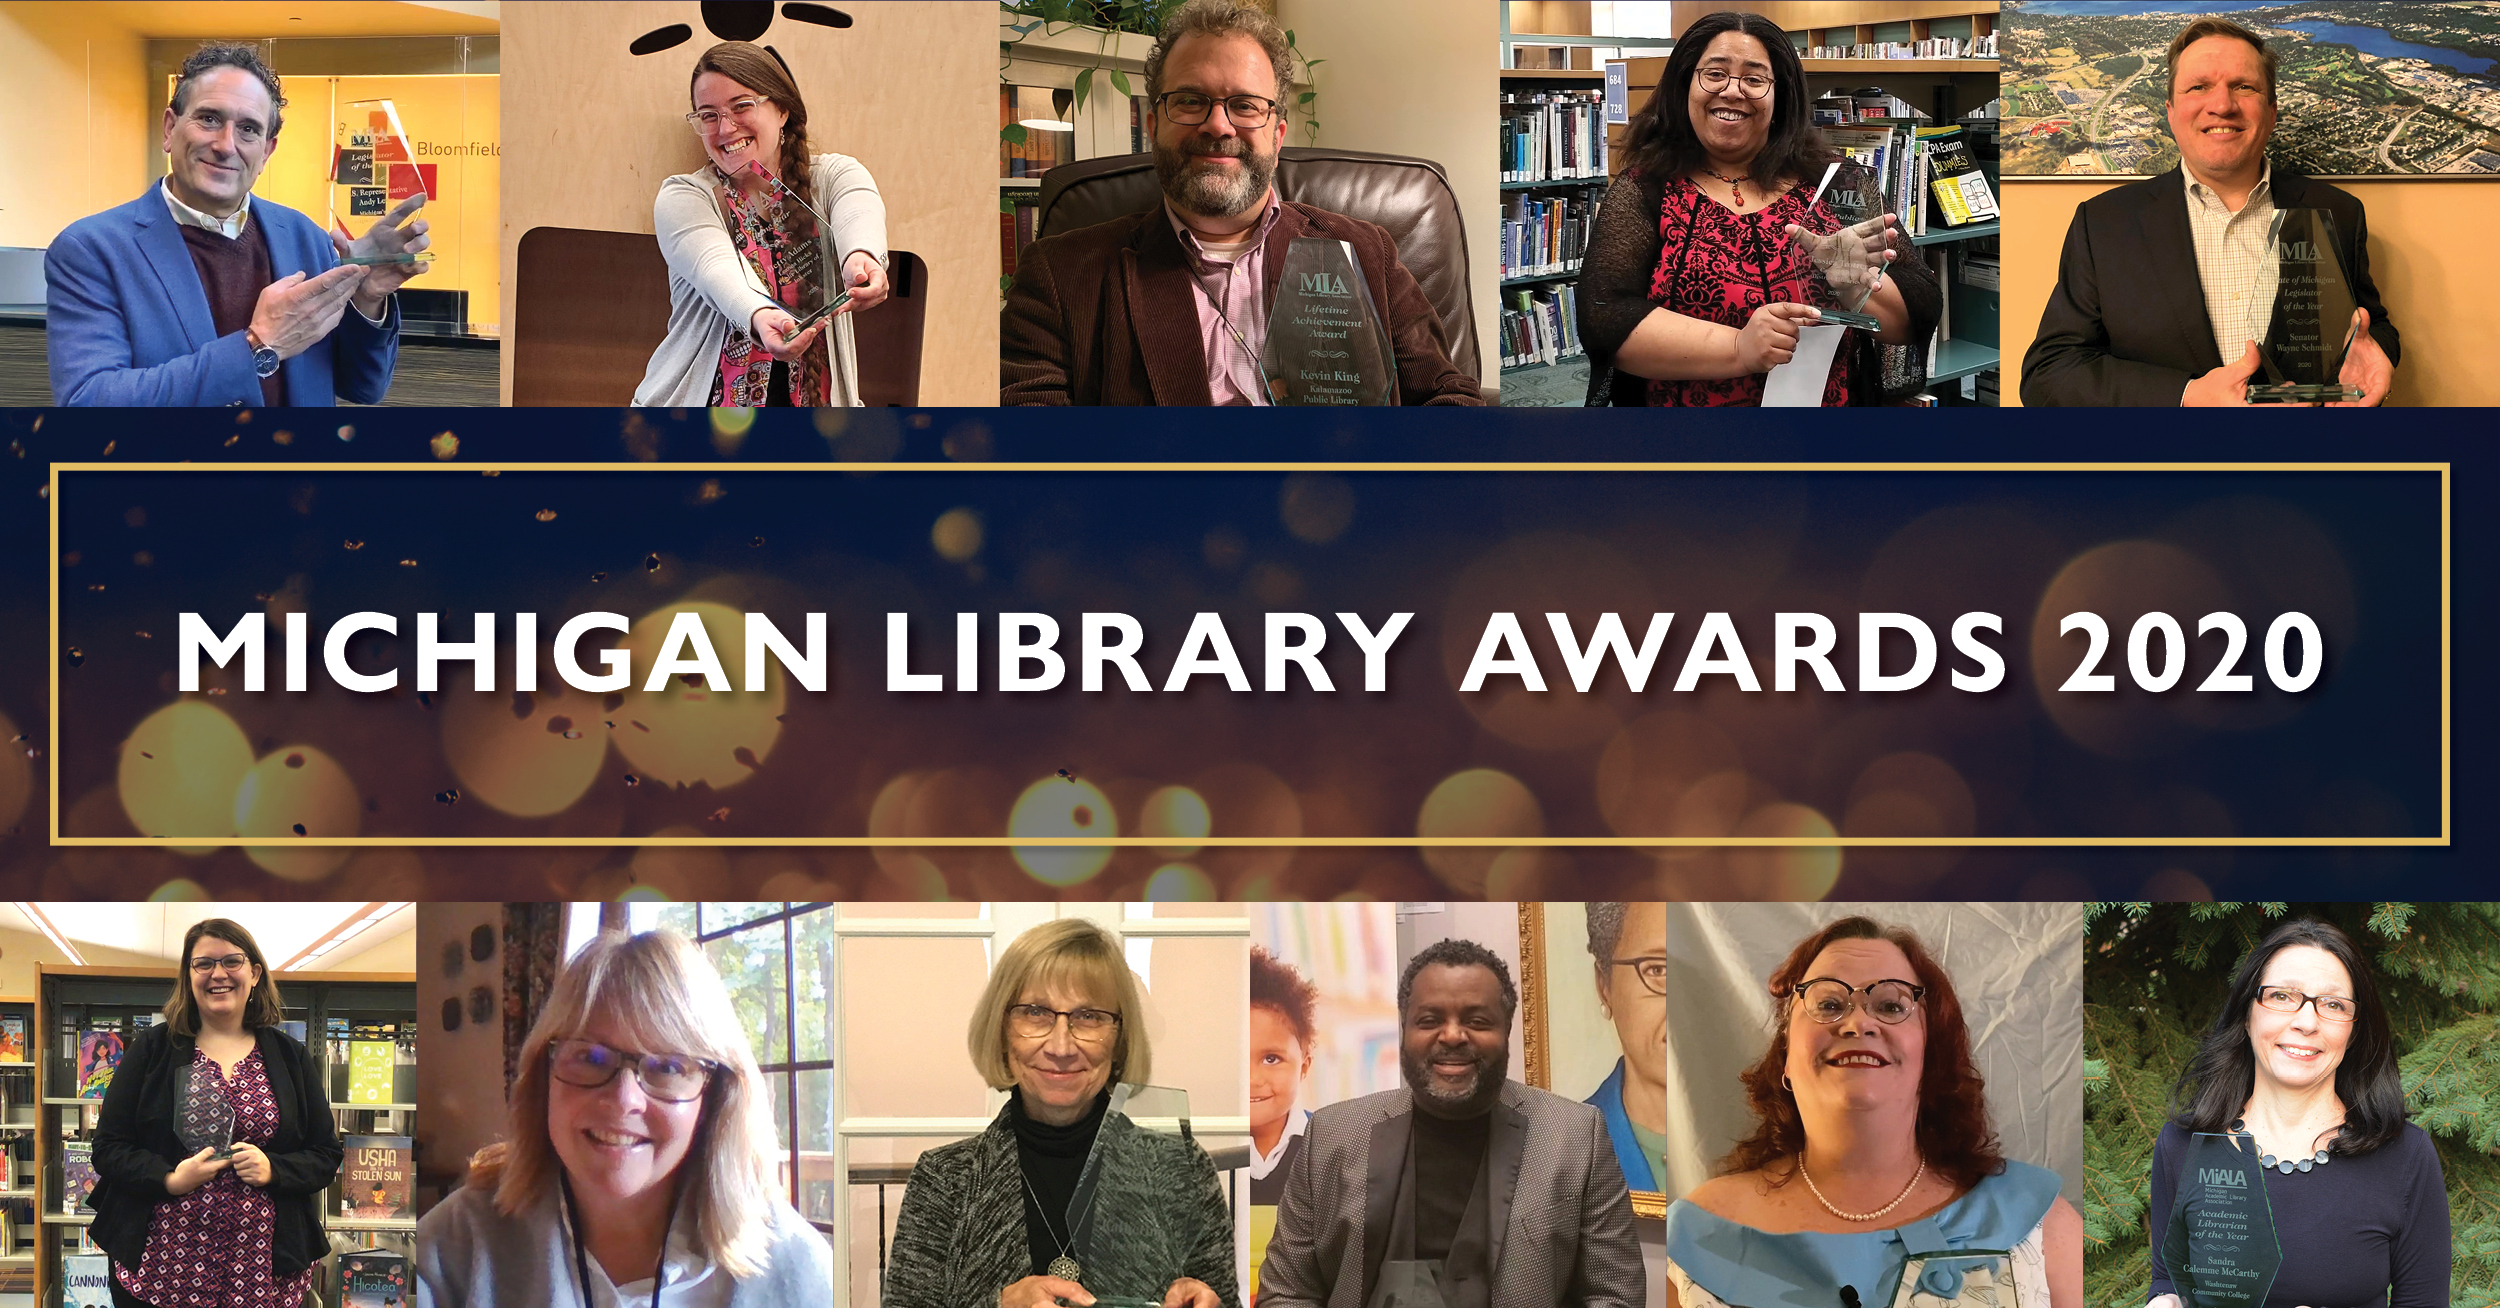 Michigan Library Awards